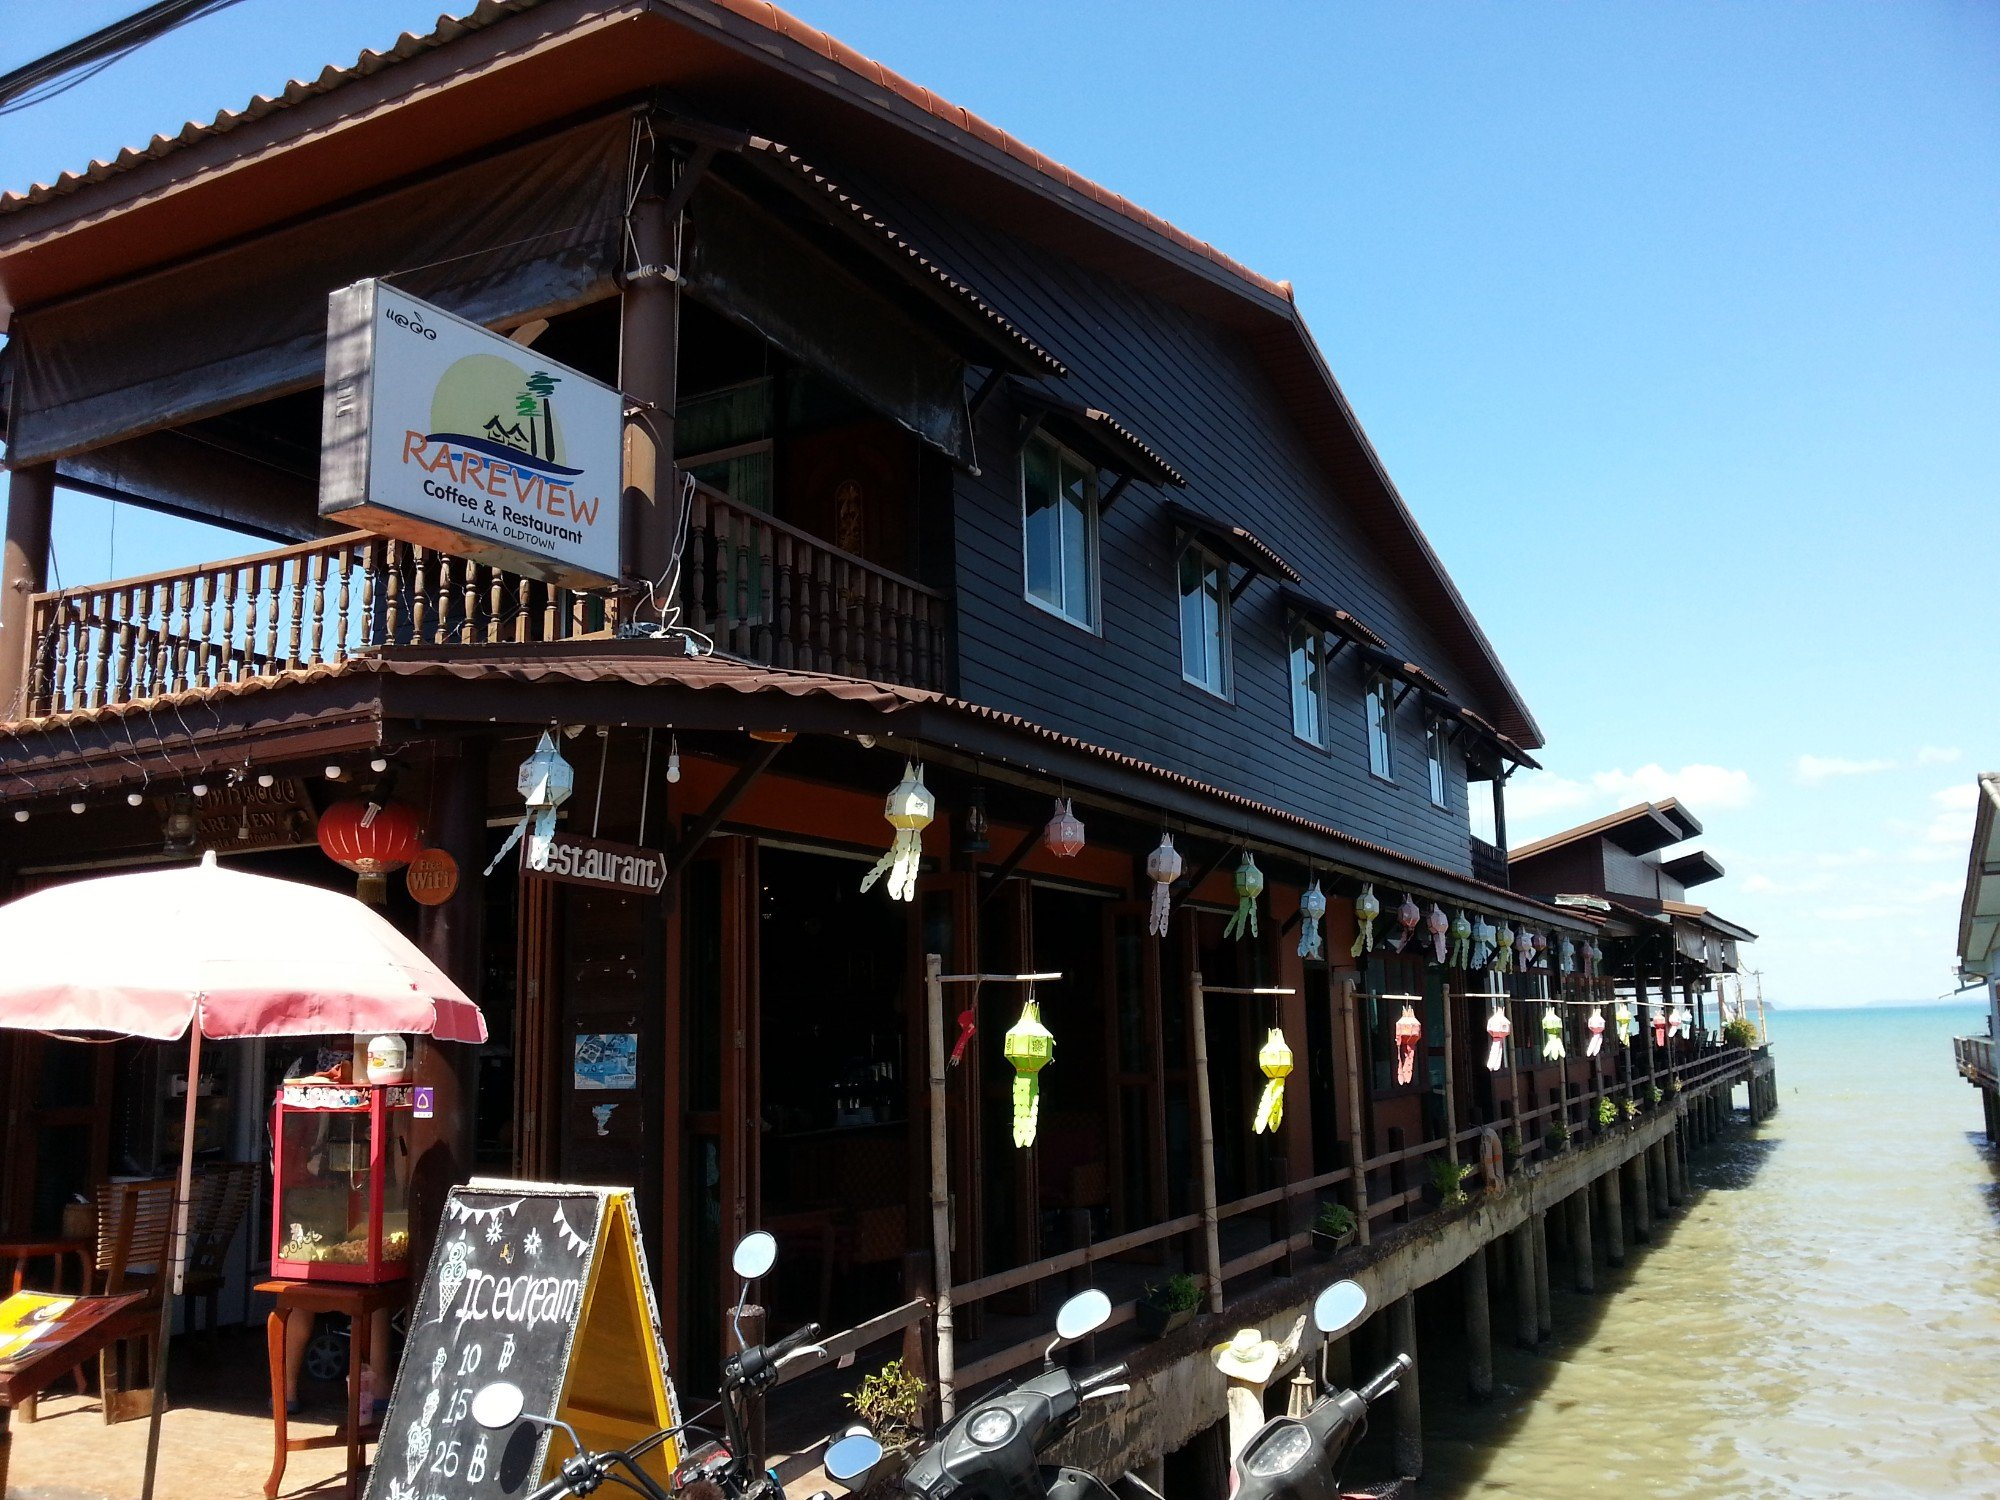 Rareview Restaurant in Koh Lanta